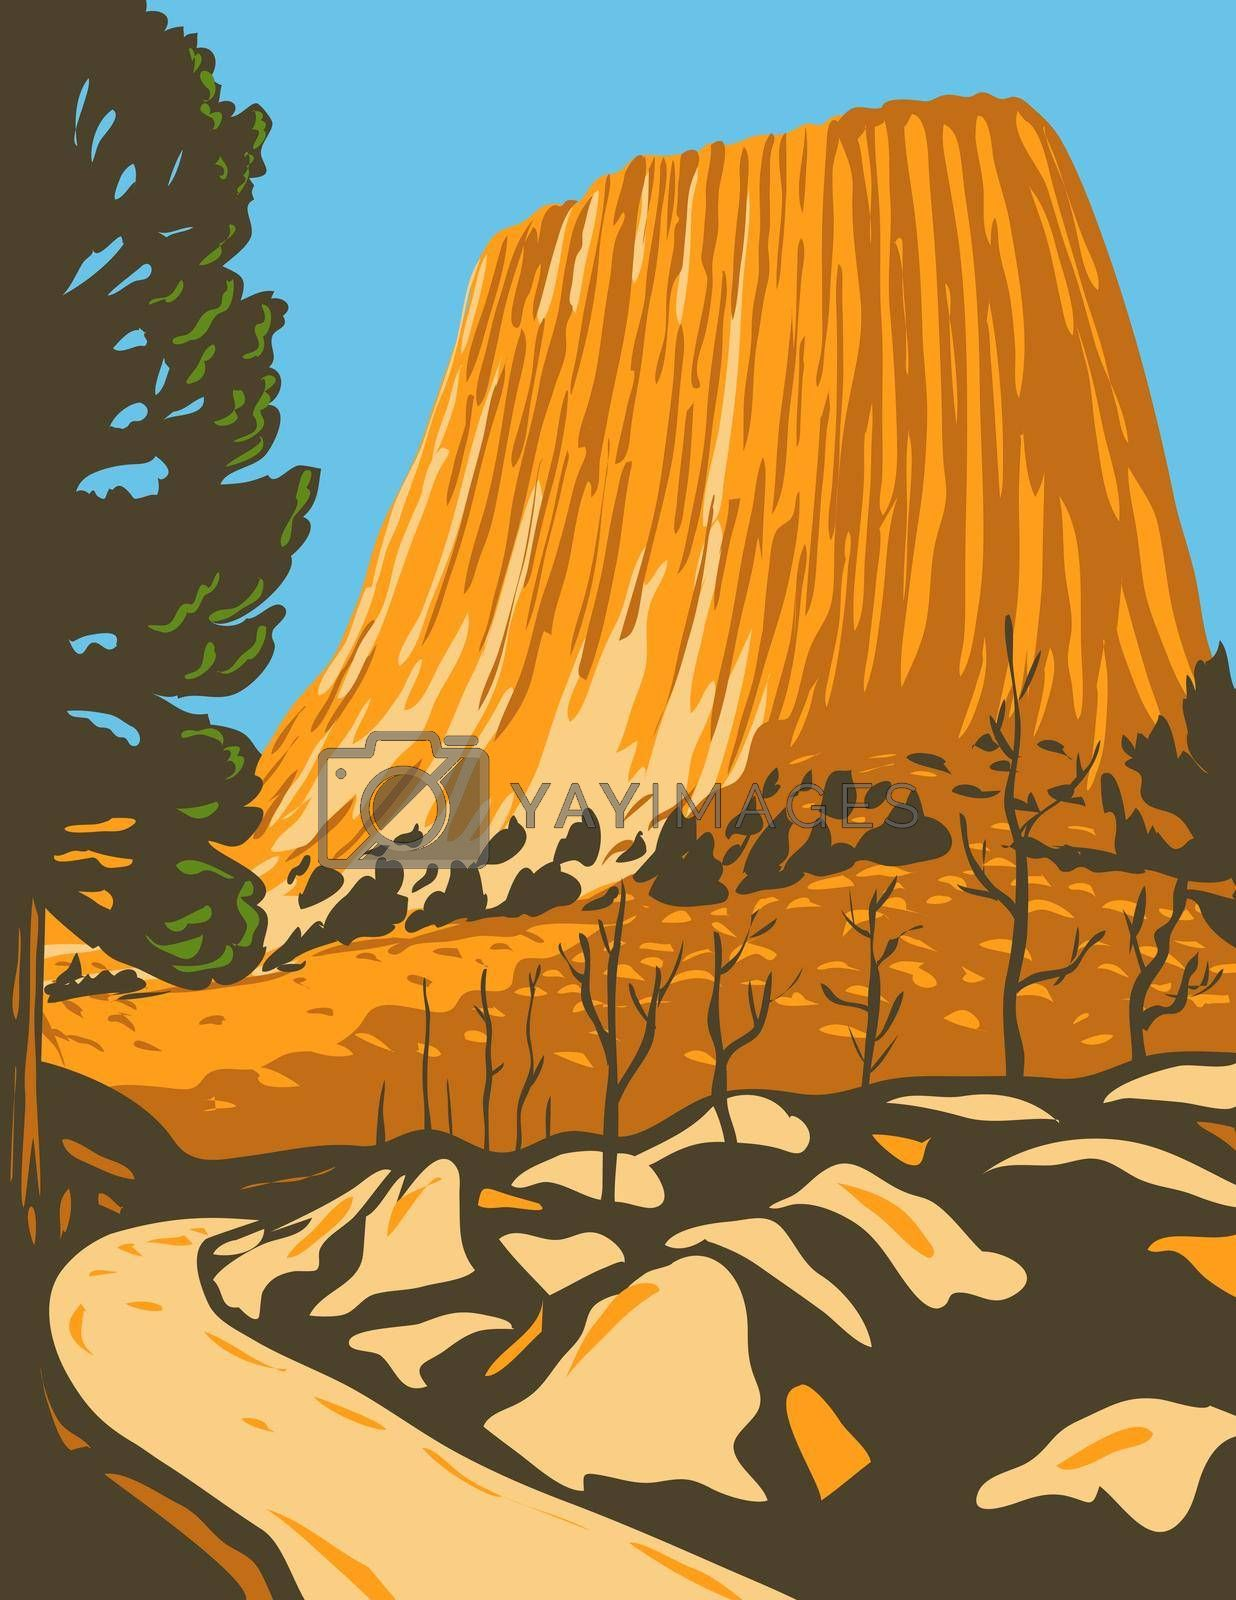 WPA poster art of the Devils Tower National Monument, a butte or laccolithic in Bear Lodge Ranger District of the Black Hills in Wyoming in works project administration or federal art project style.